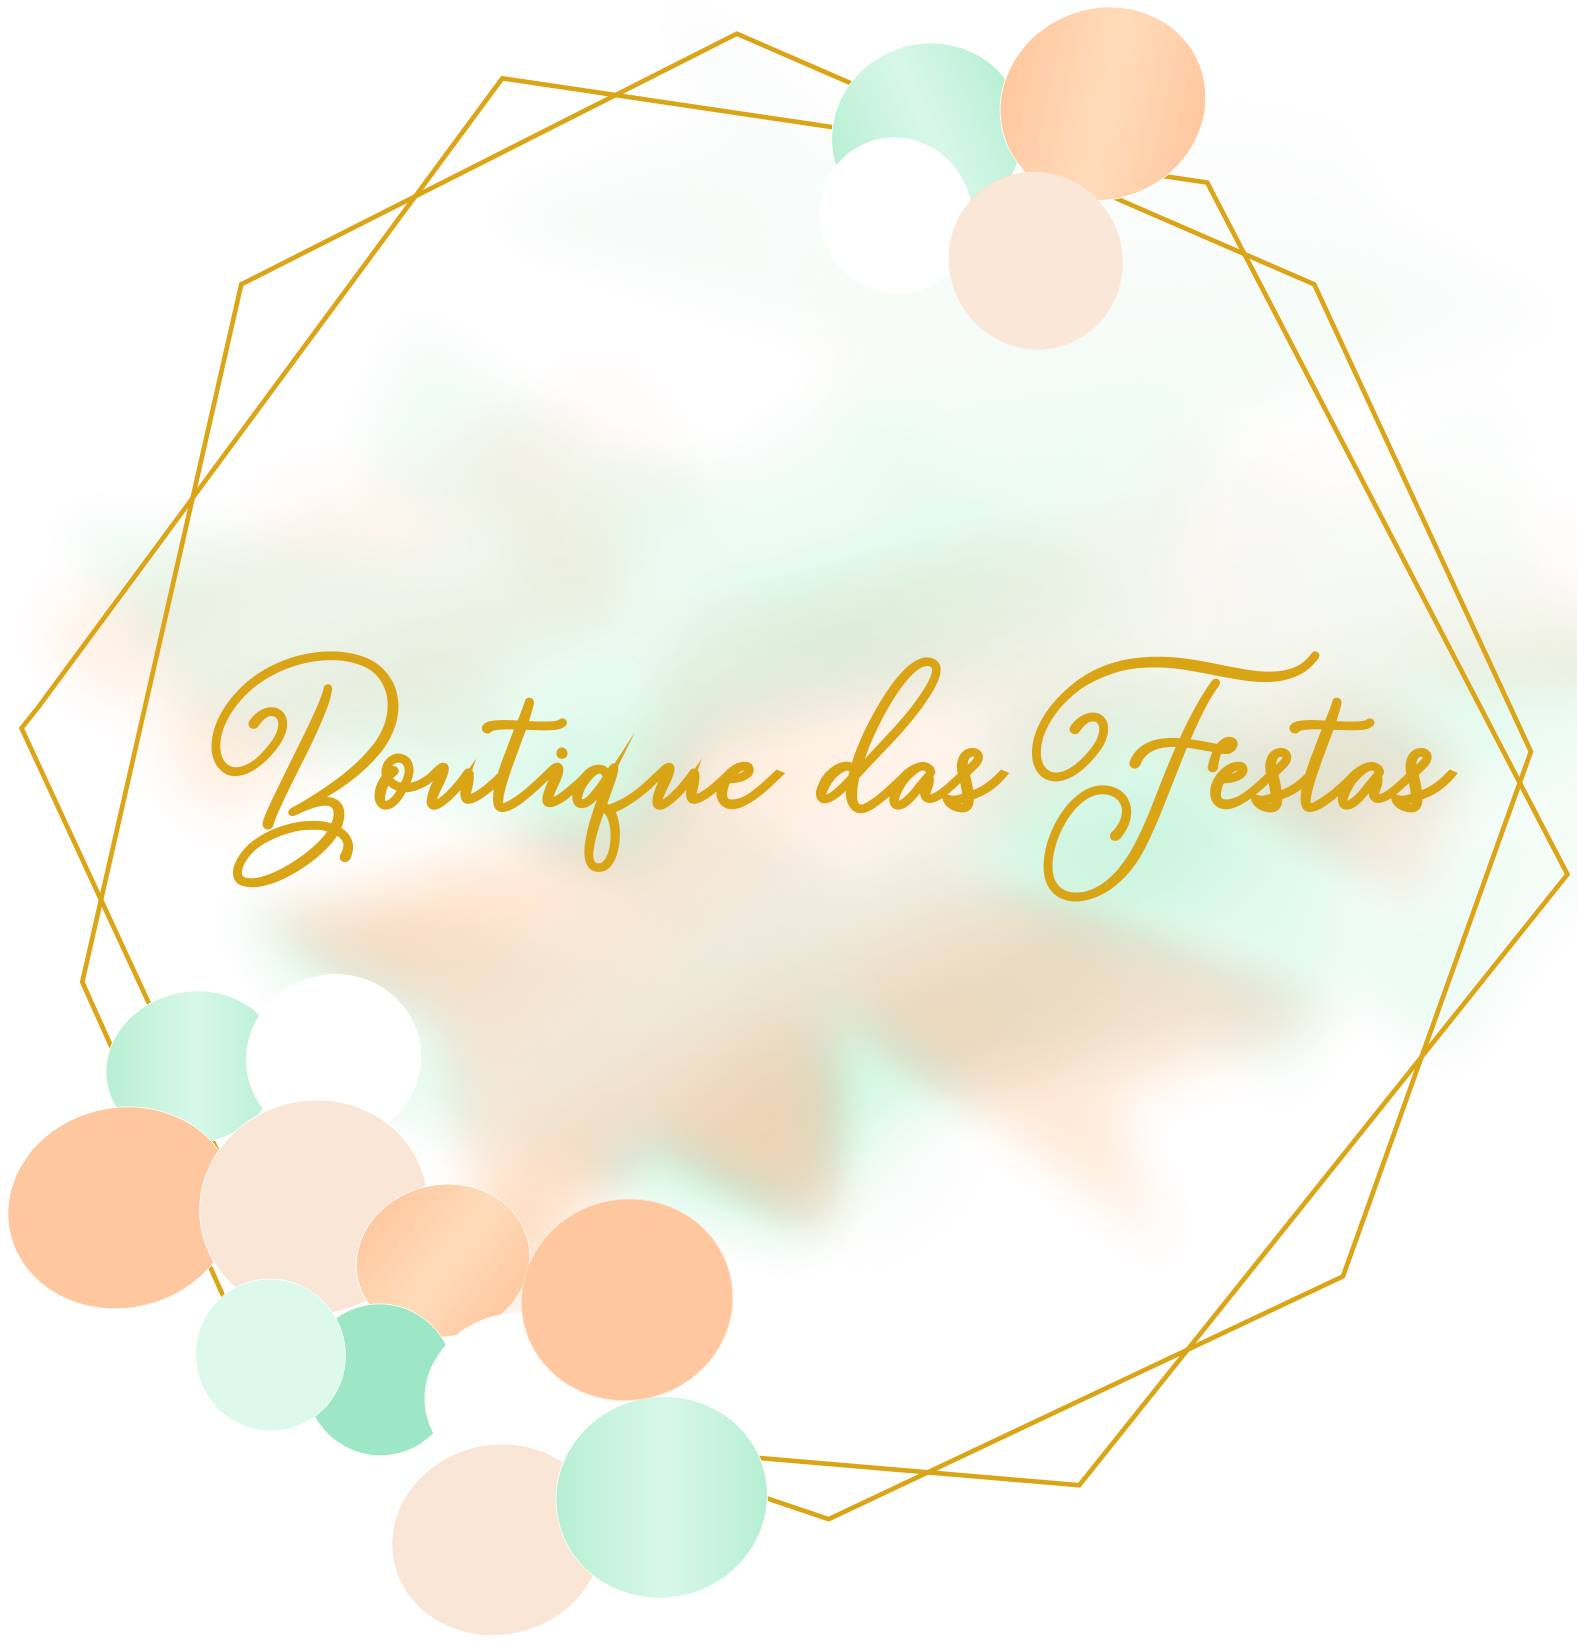 Boutique das festas